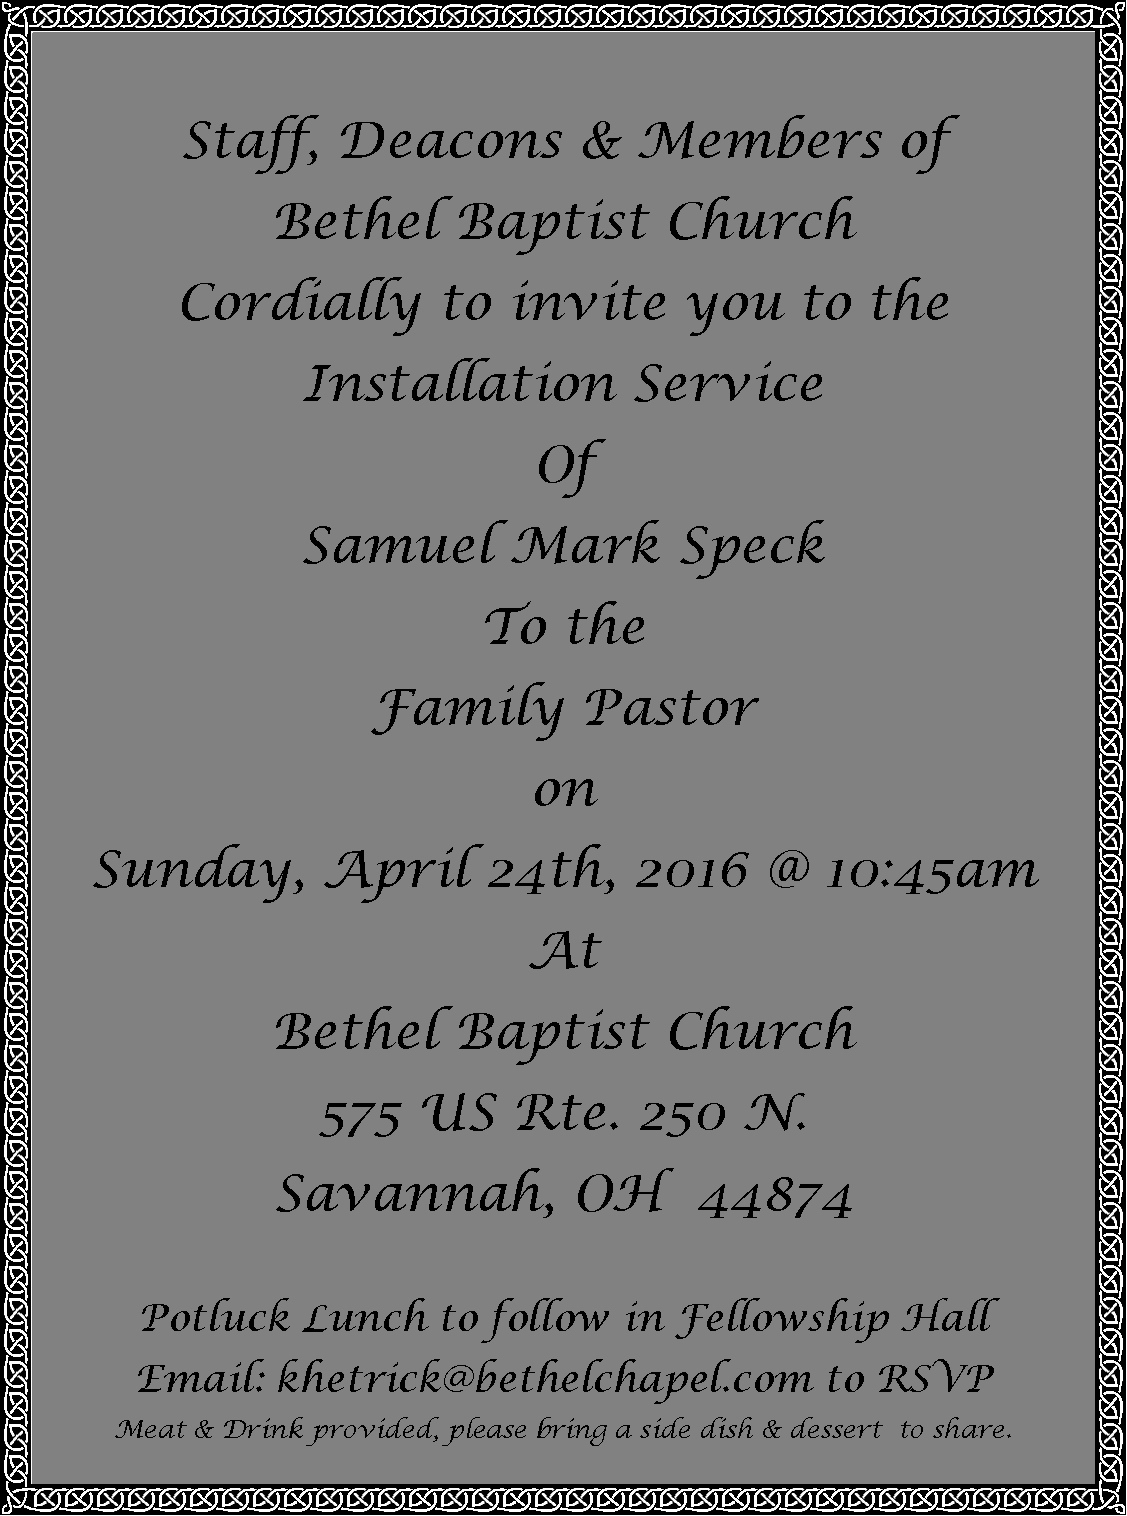 Pastor Installation Service Invitation Unique Family Pastor Installation Service Bethel Baptist Church